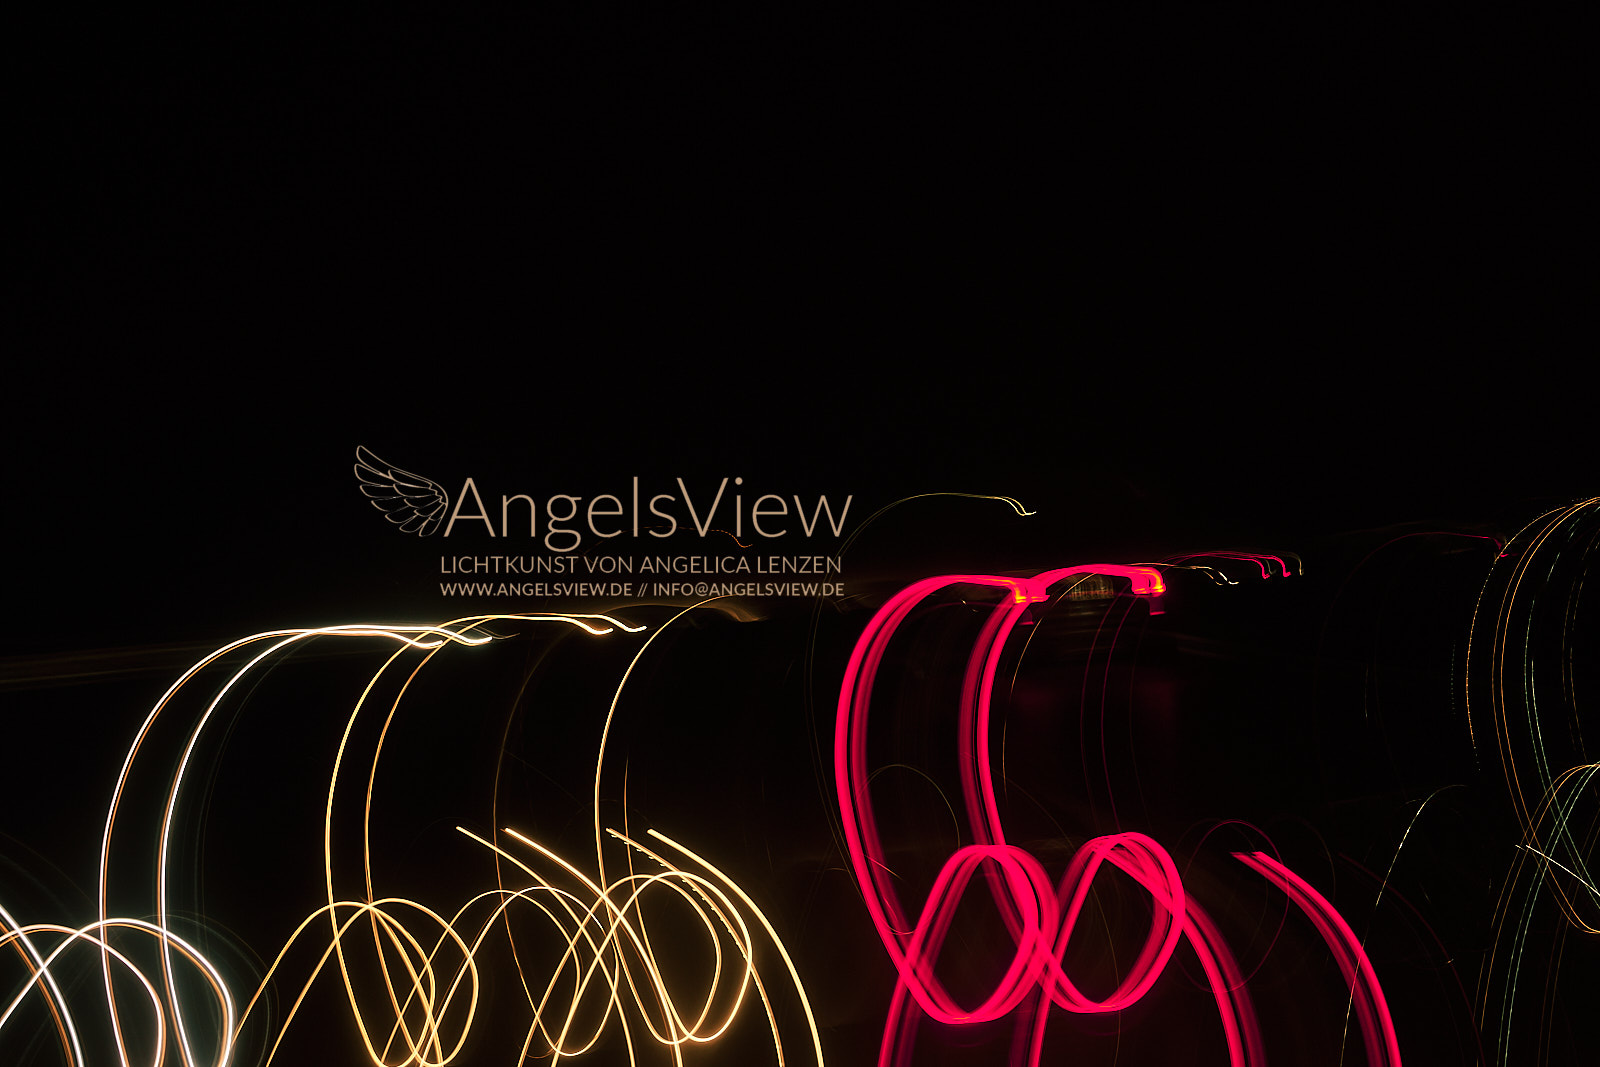 Route 66 AngelsView